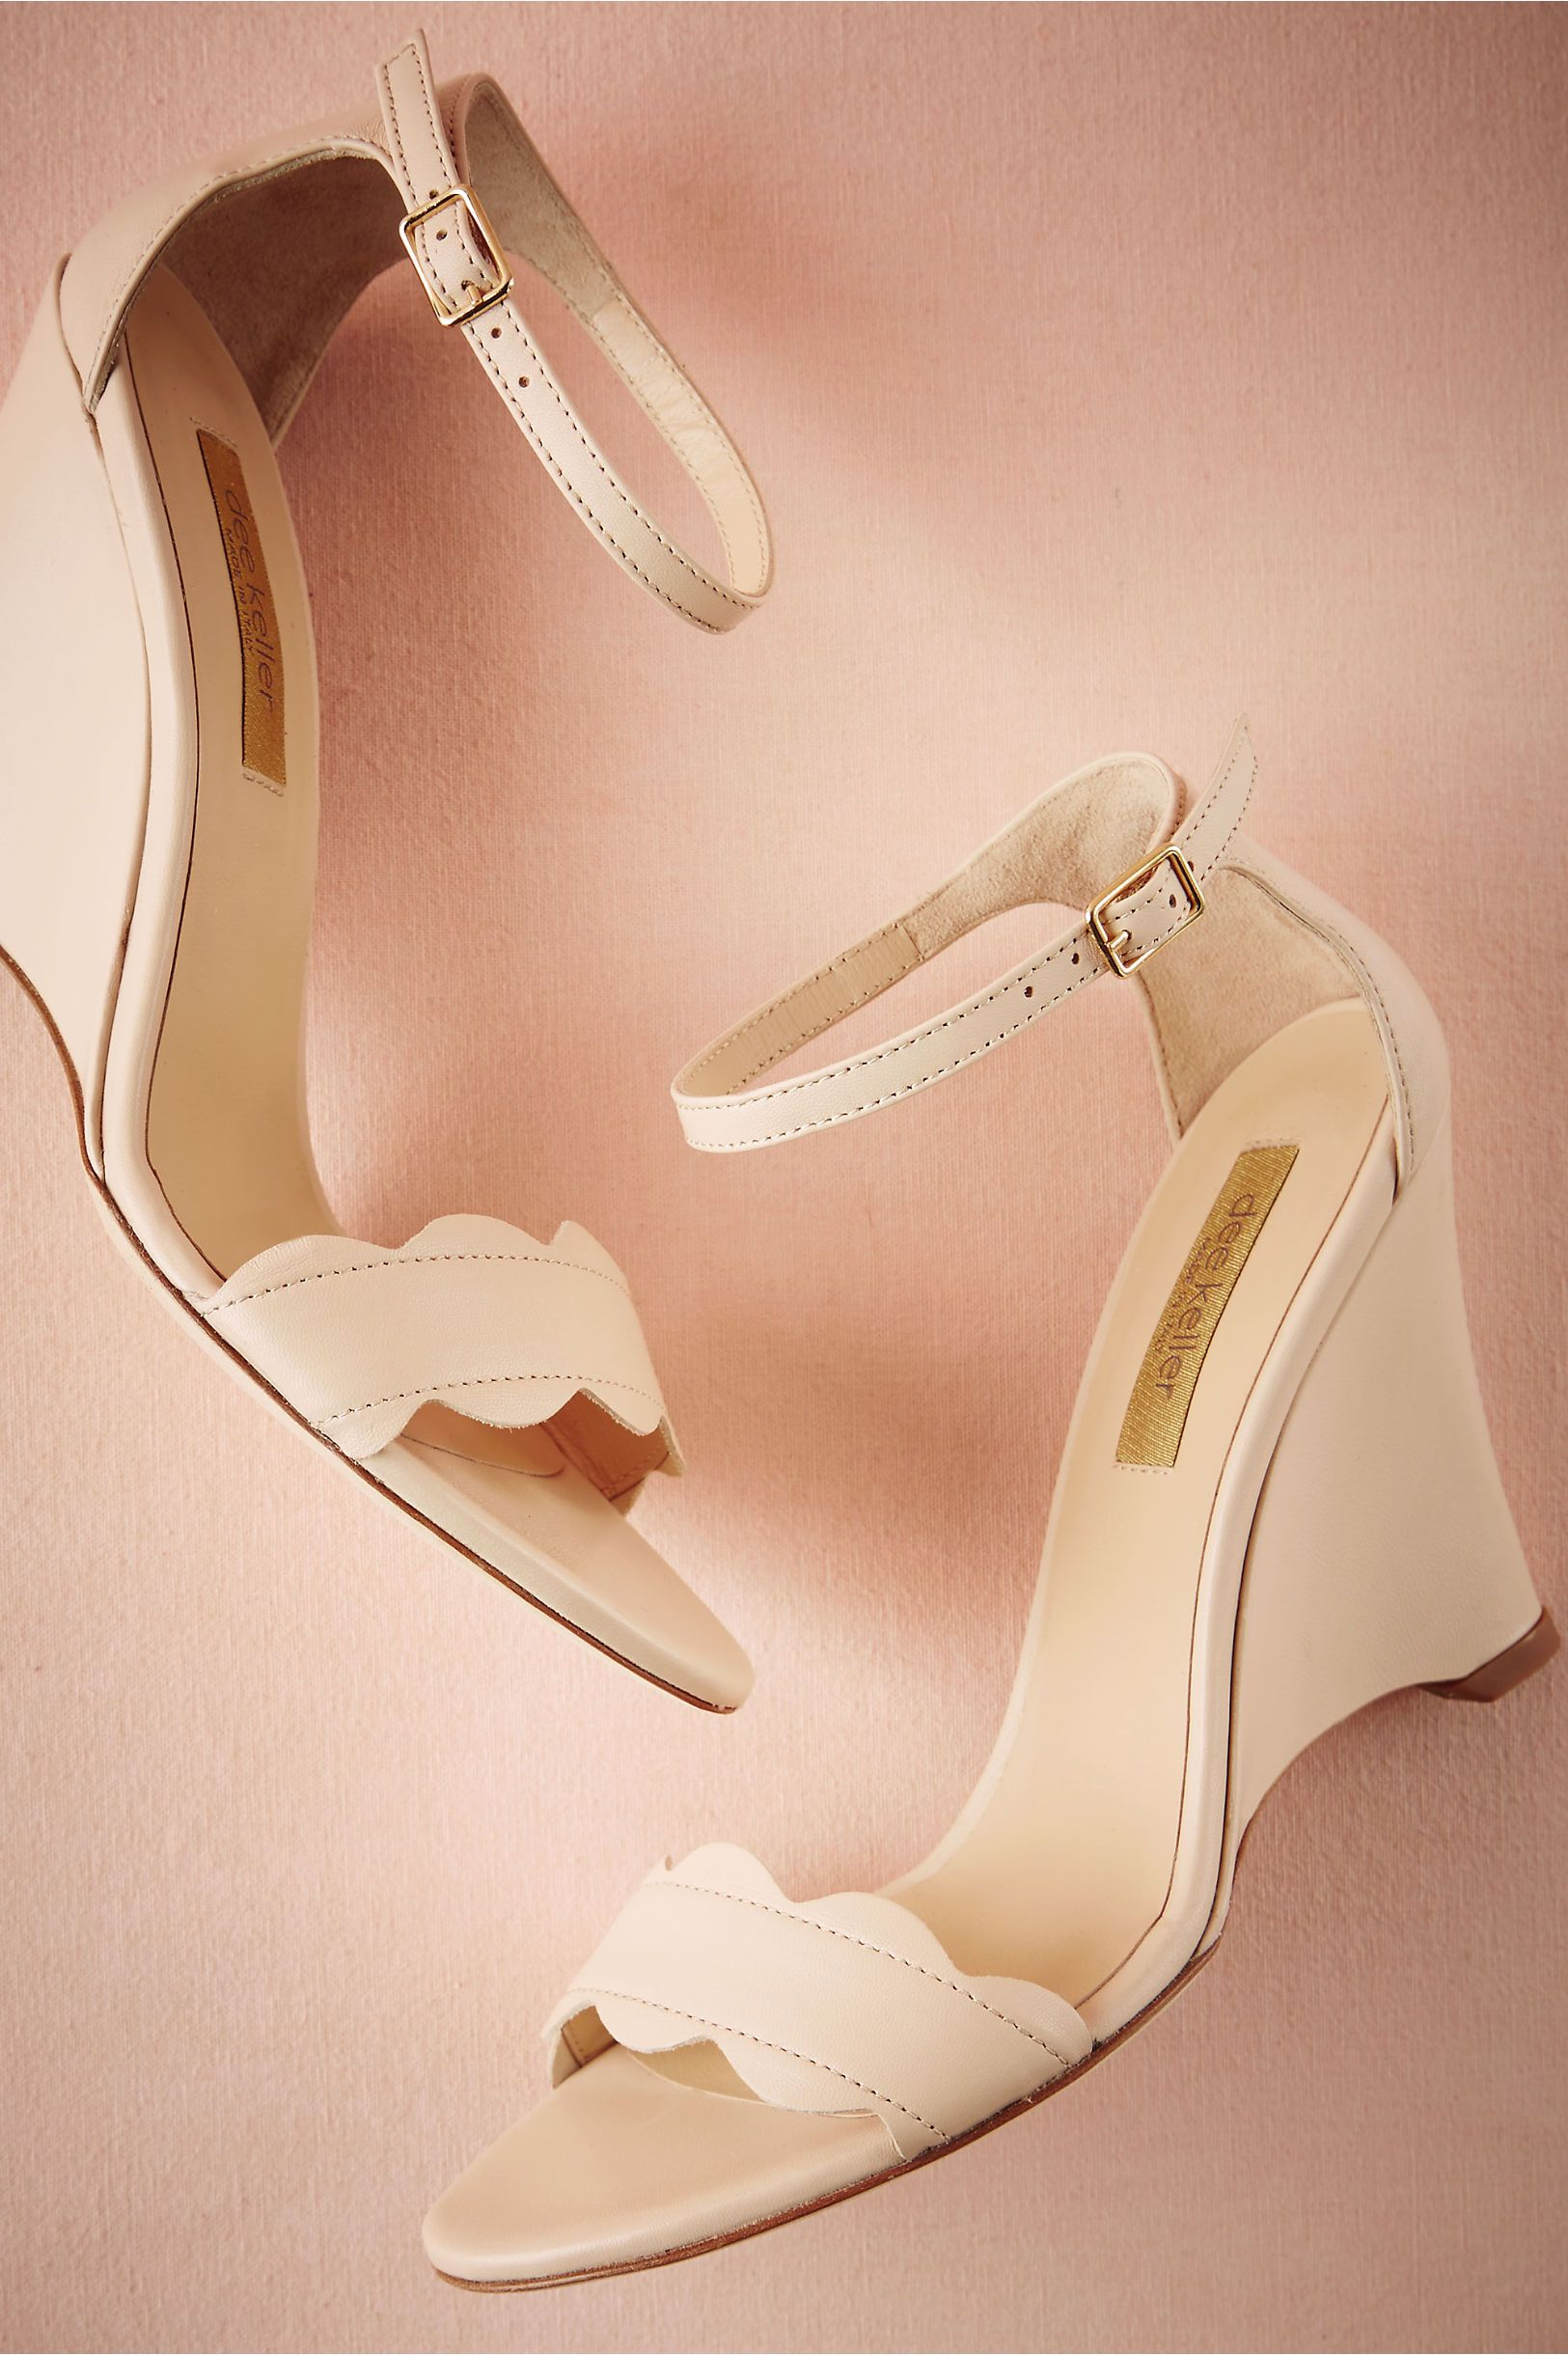 d6bd7b1fc6a3 BHLDN Nimbus Wedges in Bridesmaids Bridesmaid Accessories at BHLDN ...